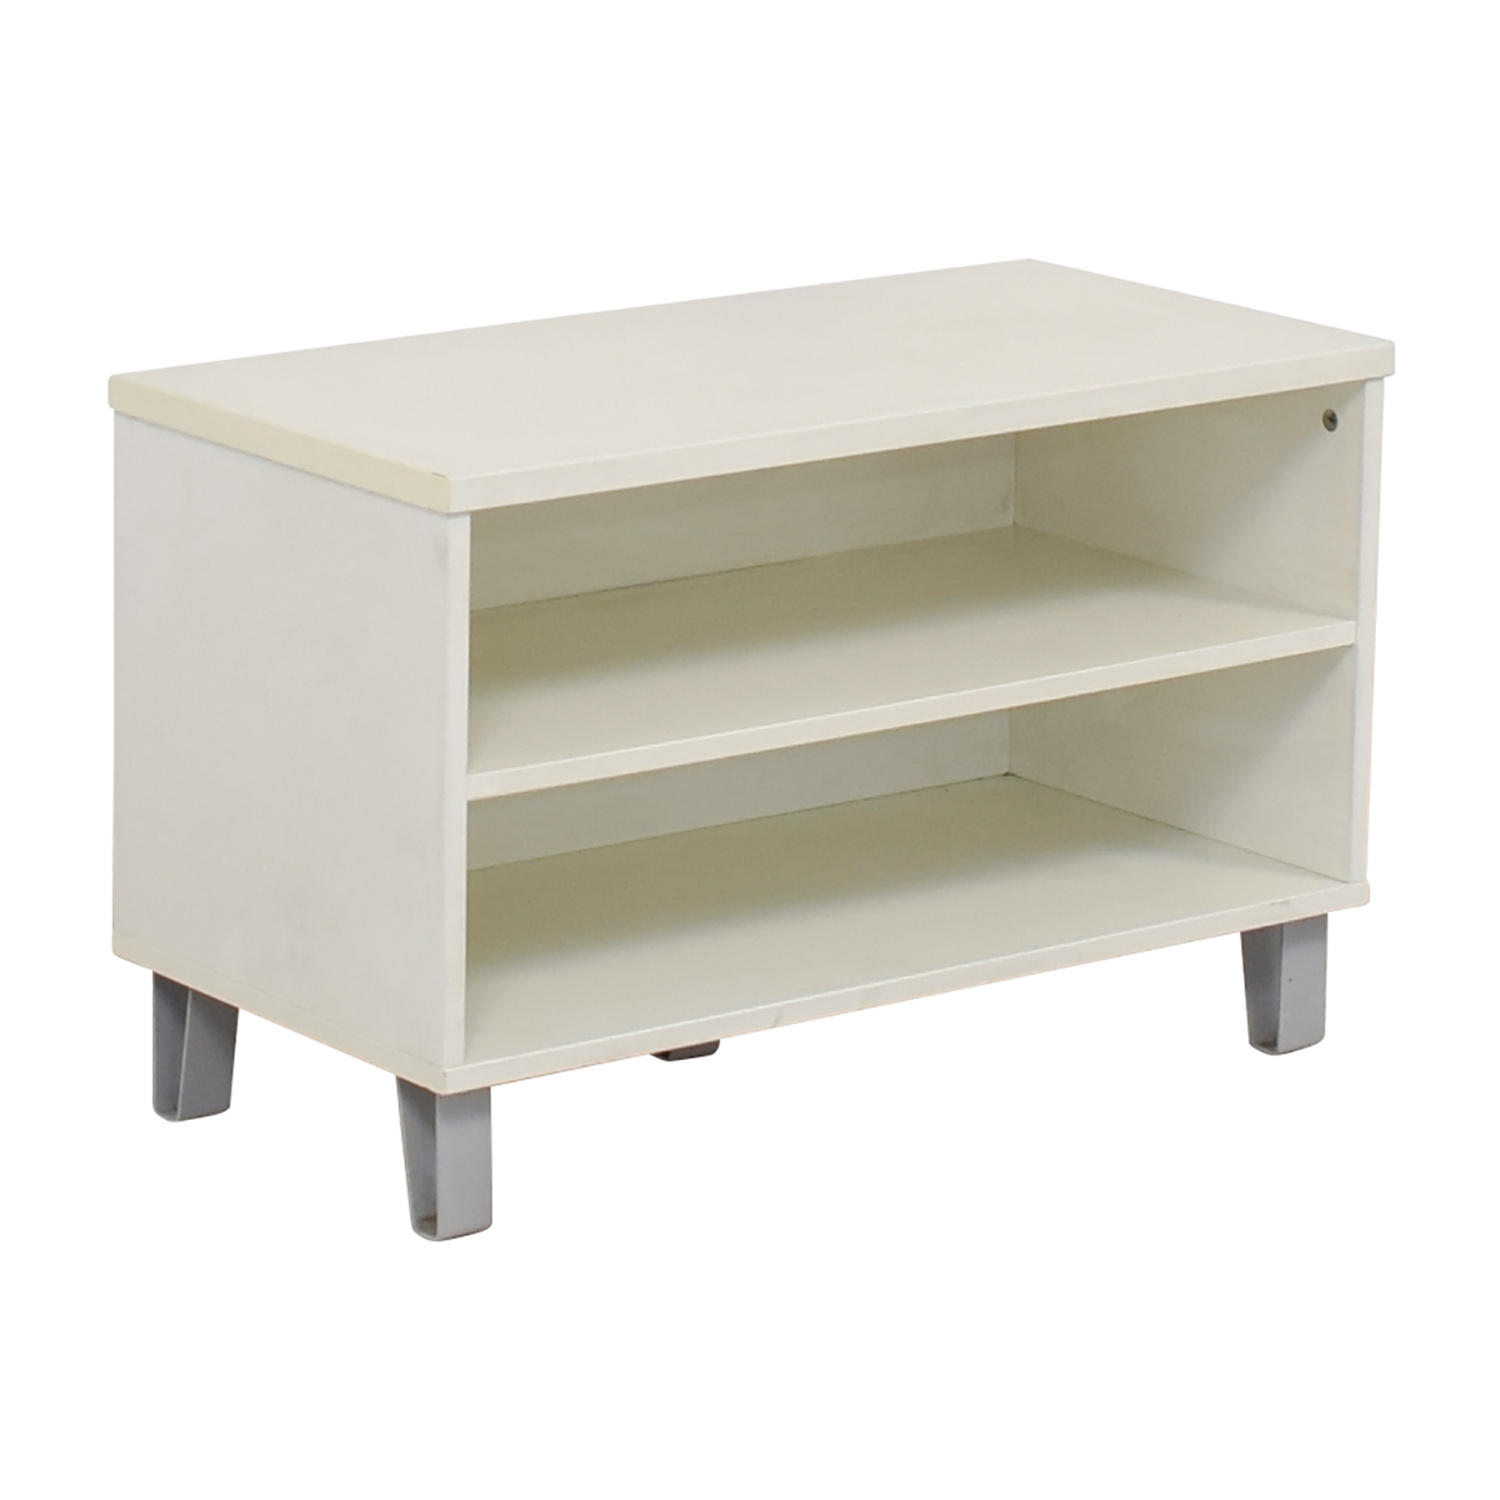 IKEA IKEA White Shelving Unit on sale